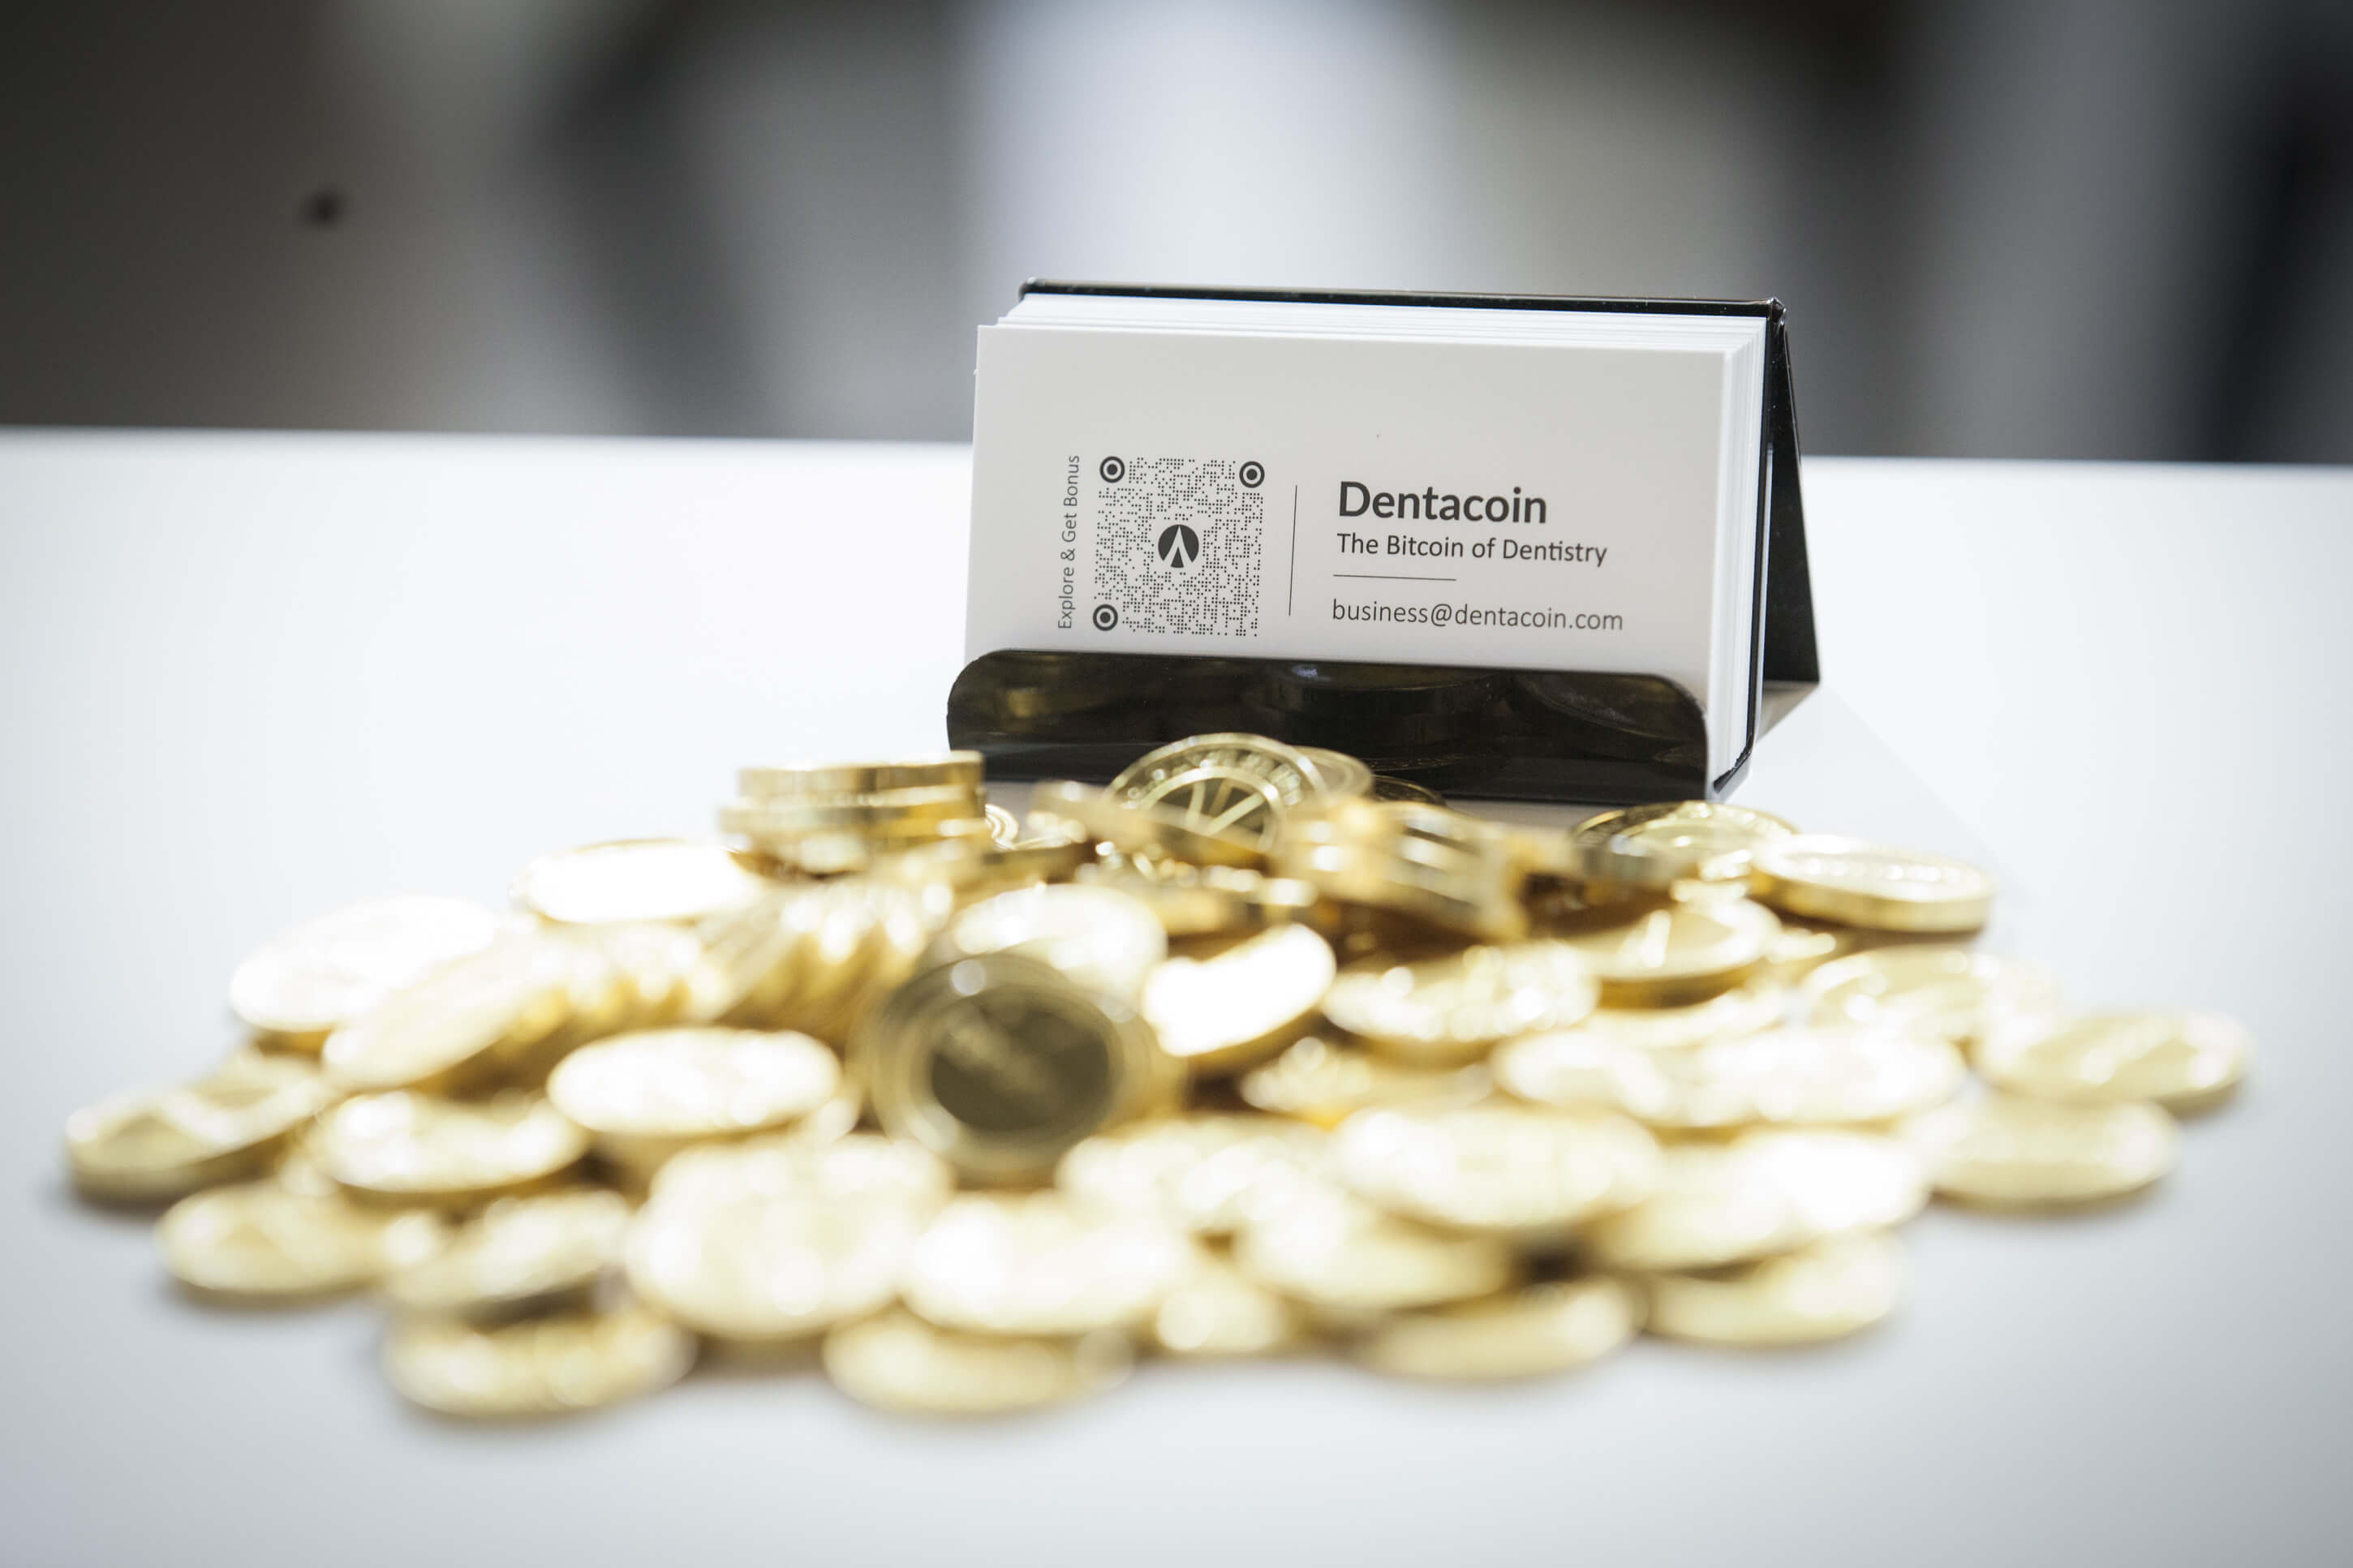 Dentacoin chocolate coins ids cologne